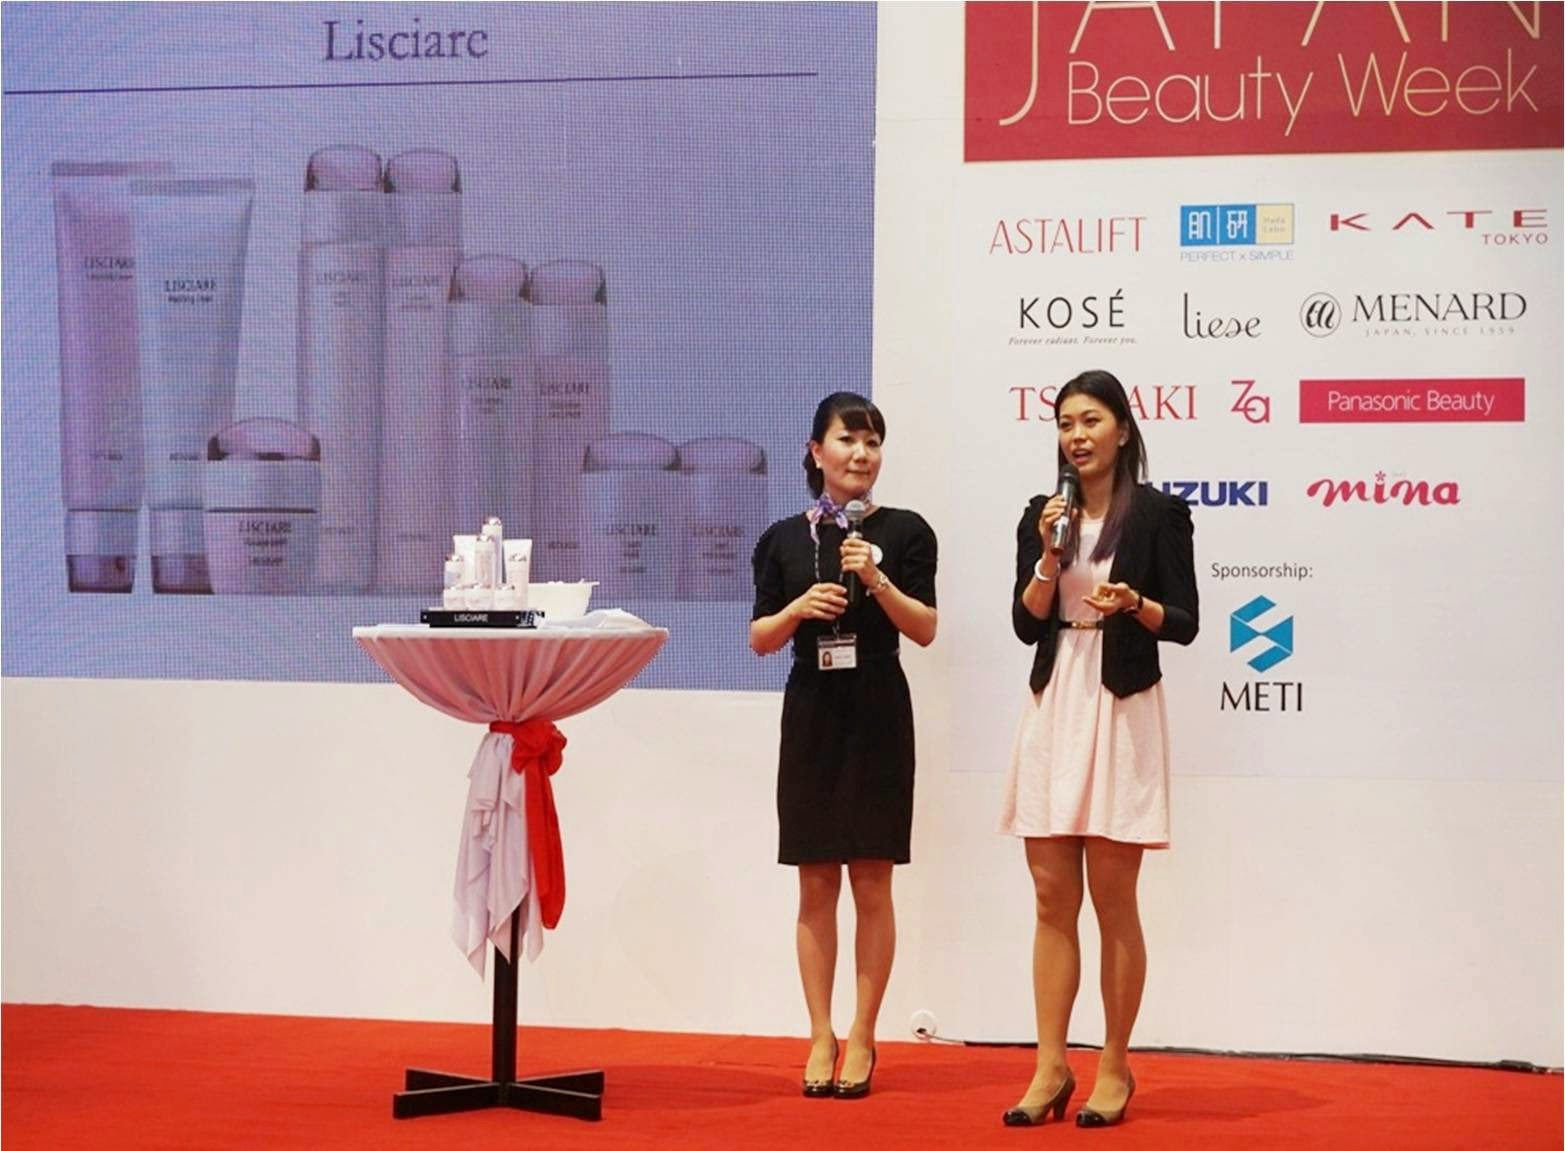 Japan Beauty Week, on stage sharing, presentation, demo, sunshine kelly, beauty tips, beauty blogger, menard, skincare, japan, ayumi, japan facial